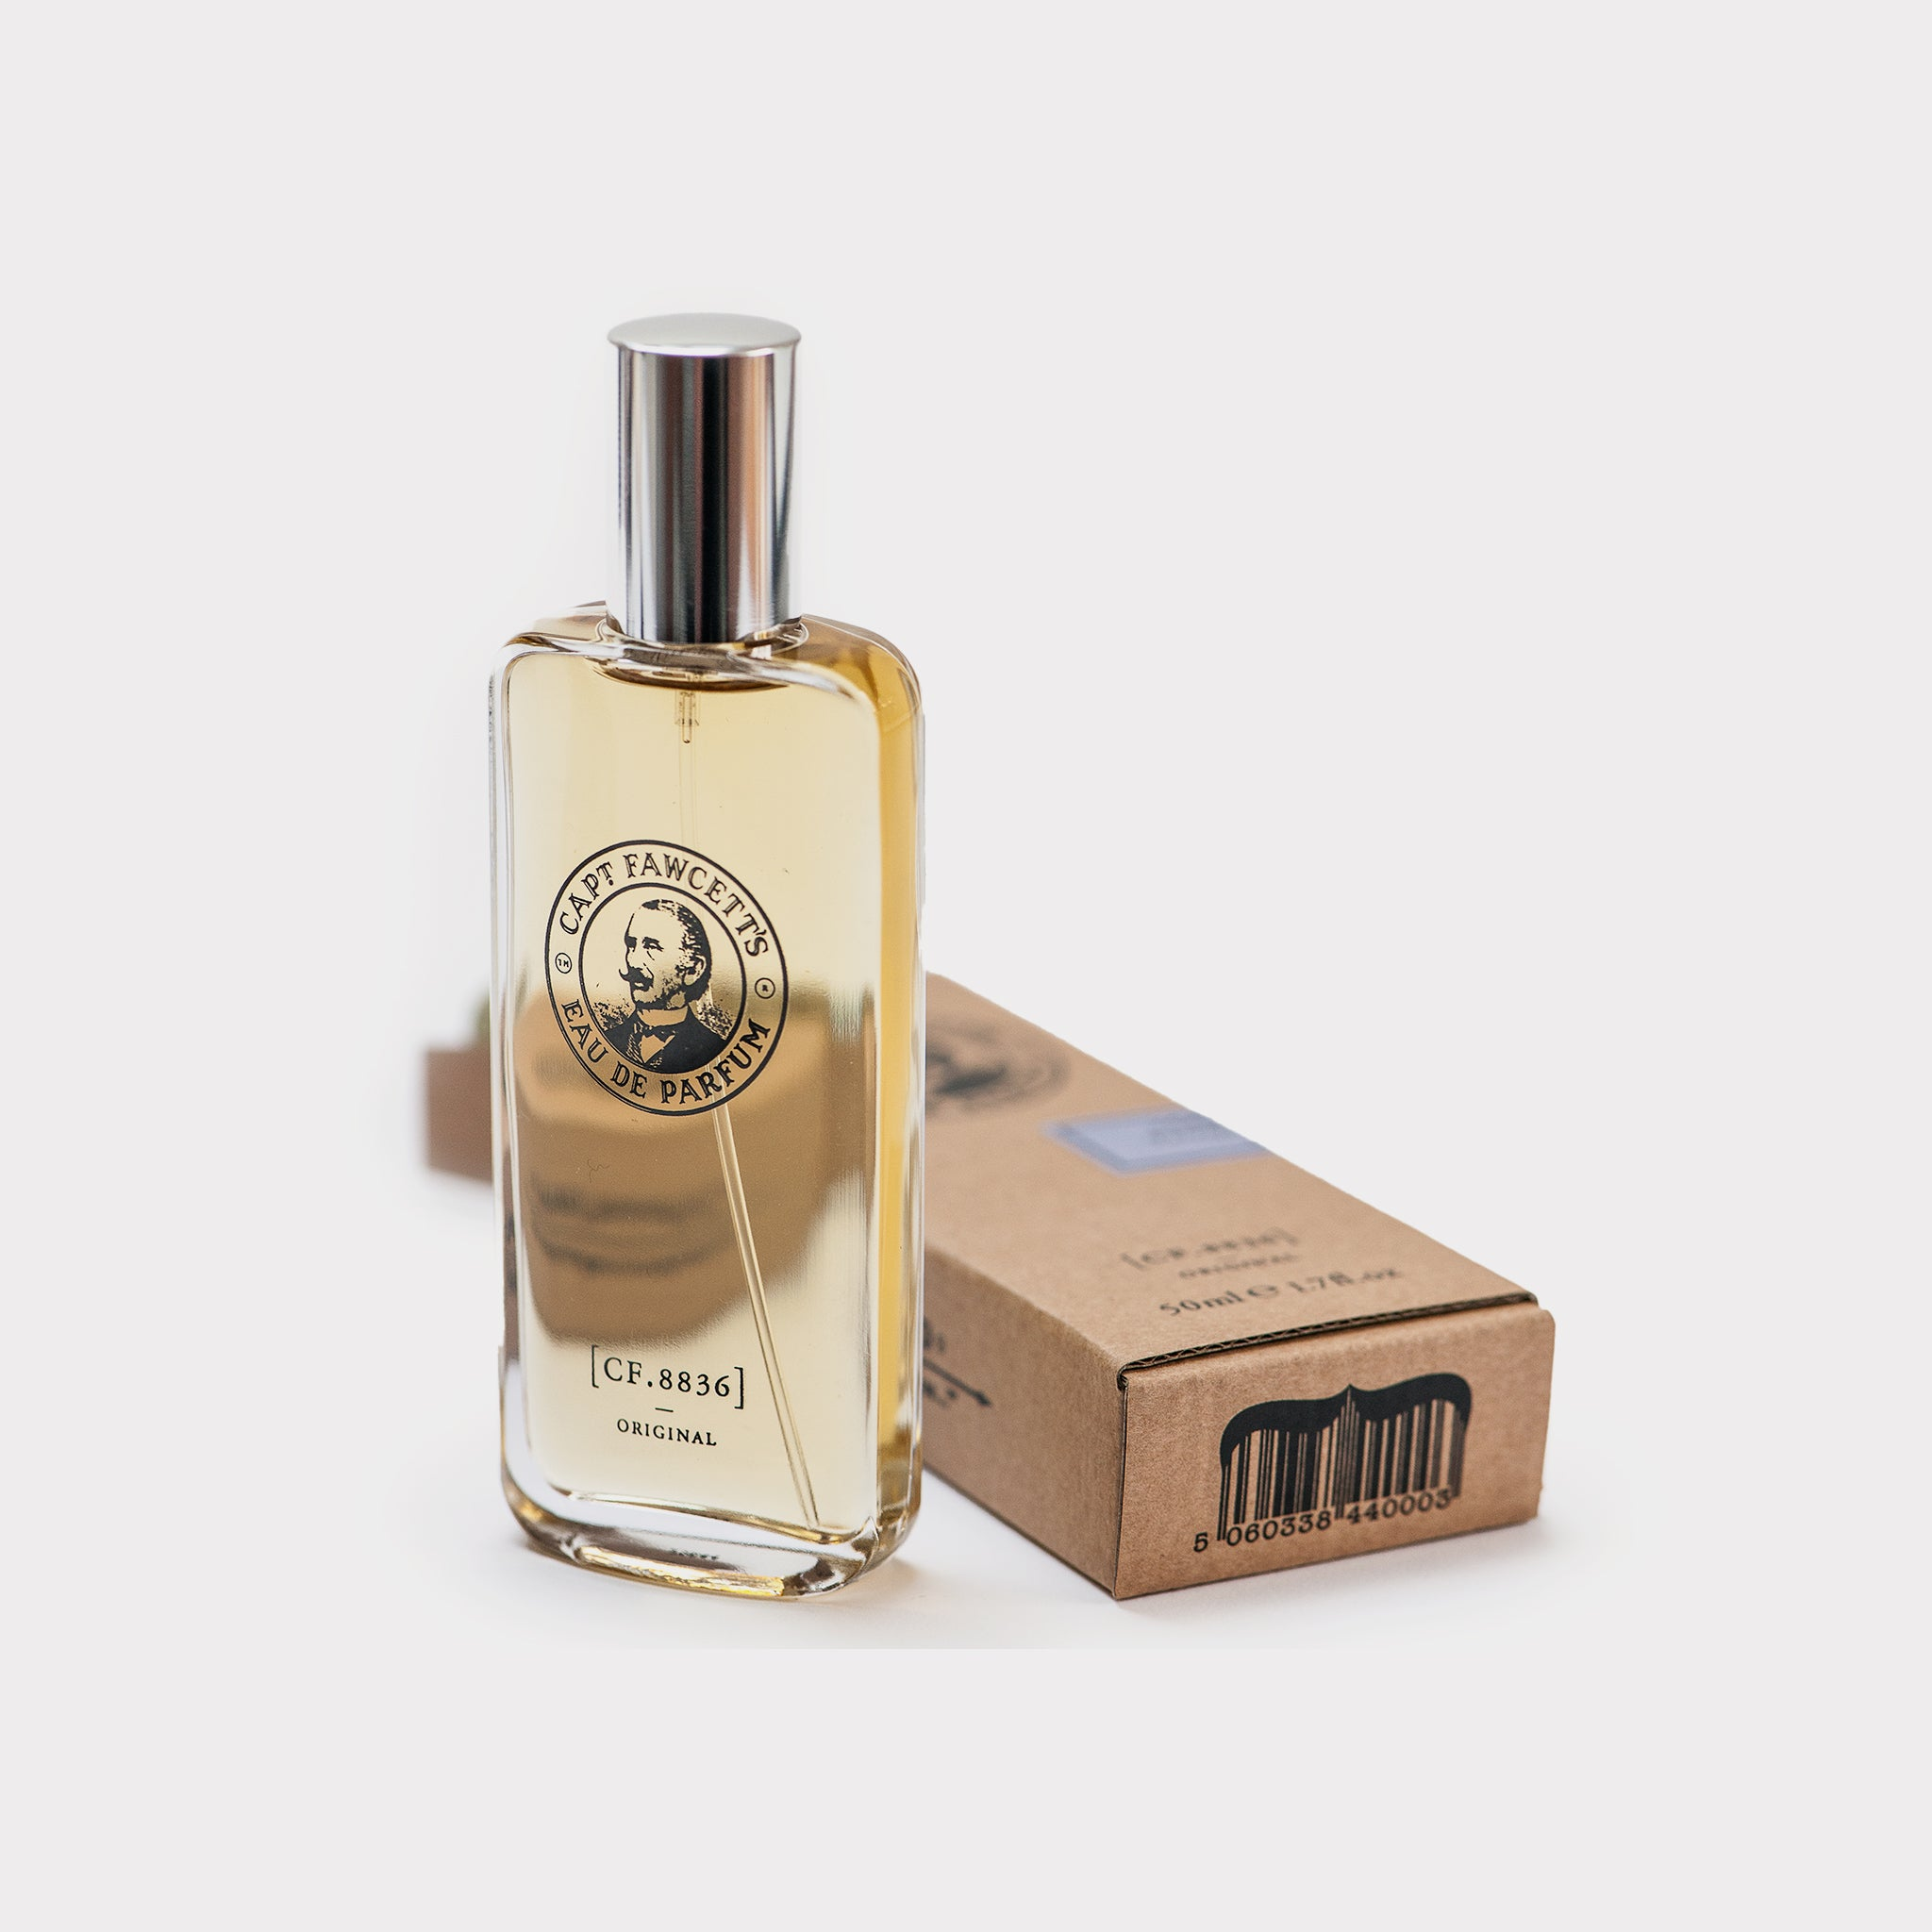 Captain Fawcett's Eau de Parfum (CF.8836) Original  50ml